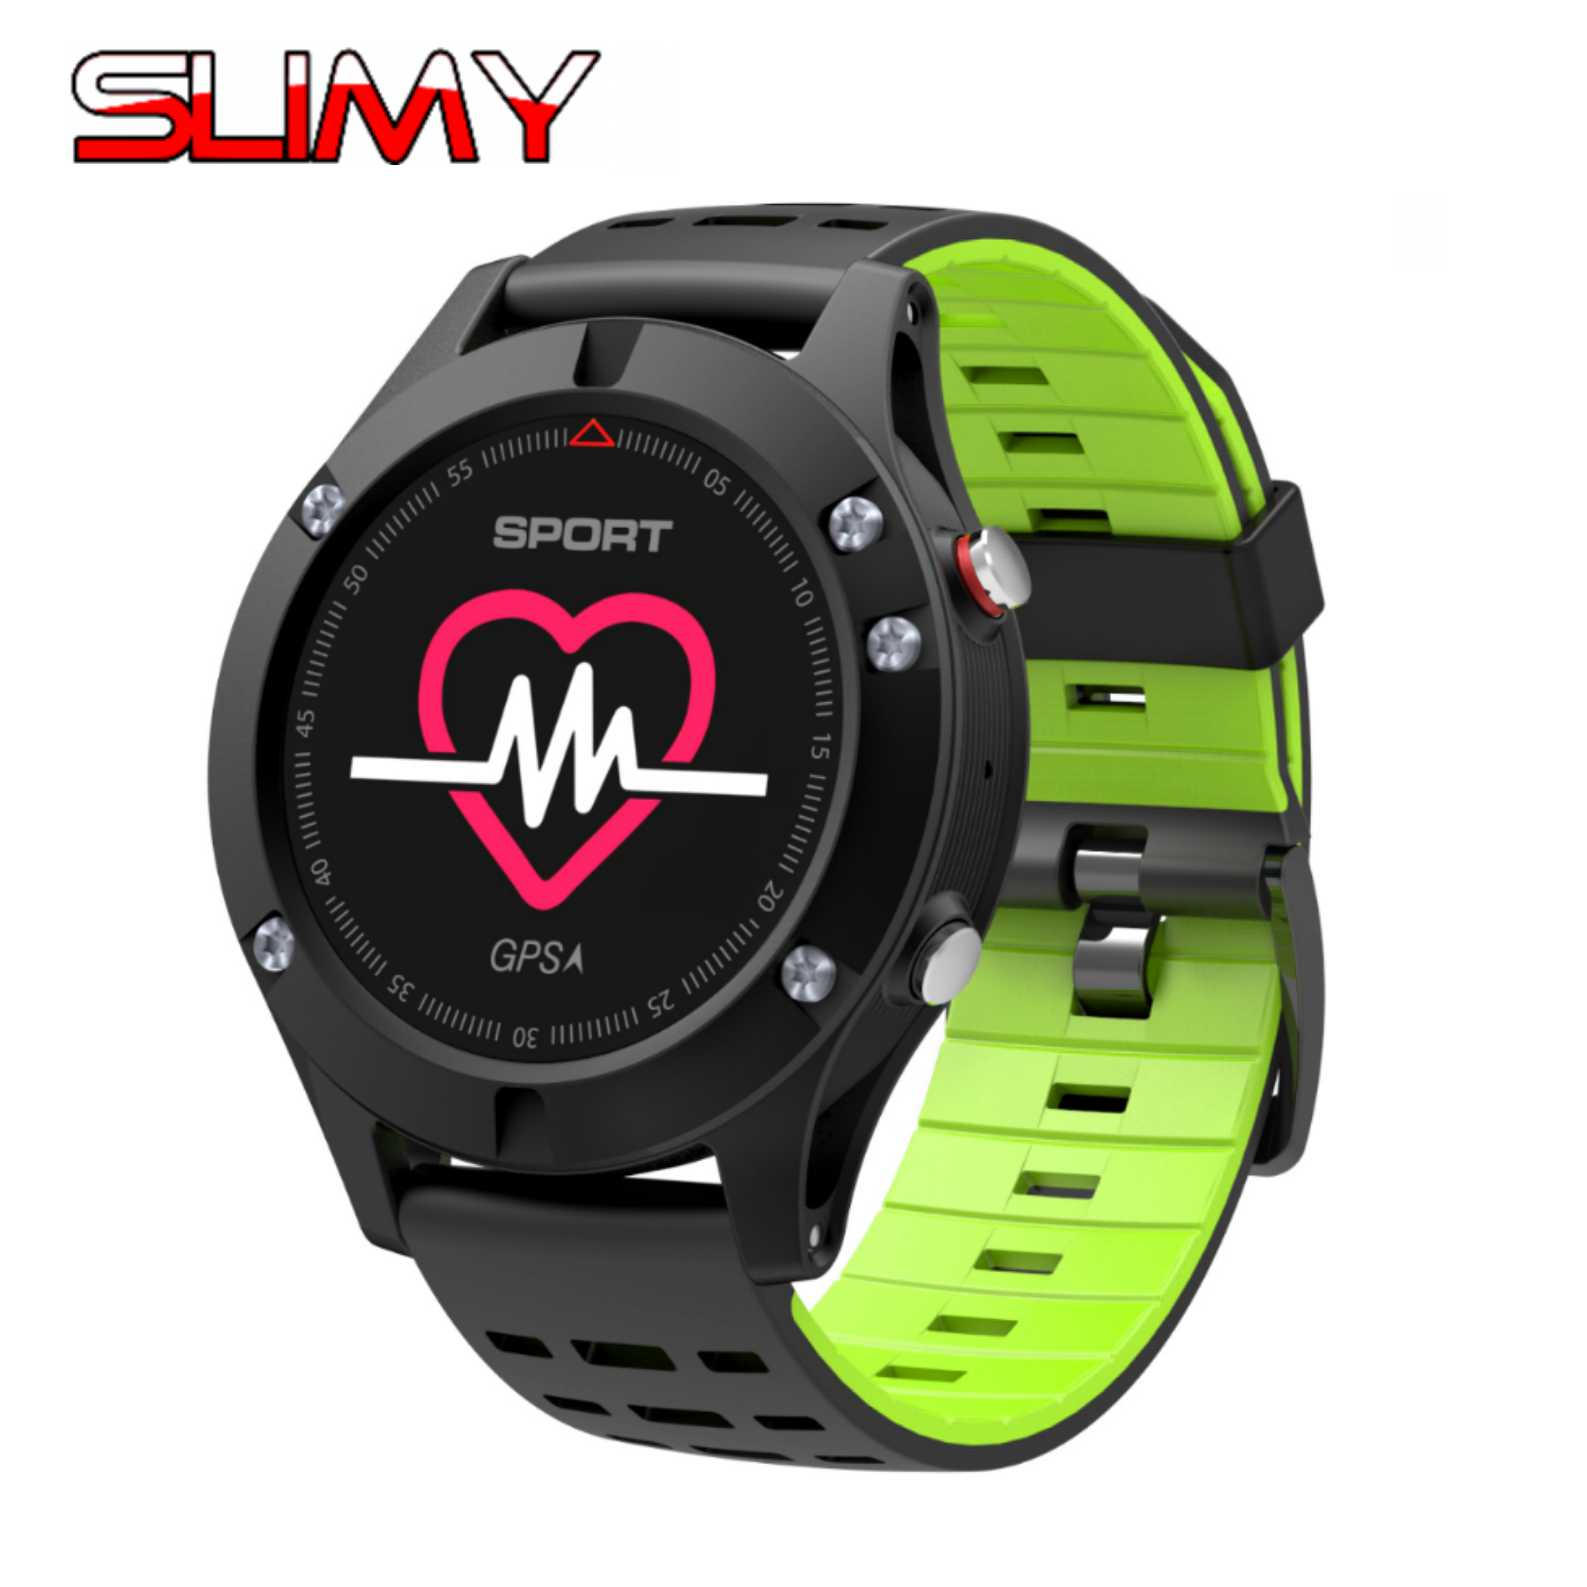 Slimy F5 GPS Smart watch Altimeter Barometer Thermometer Bluetooth 4.2 Smartwatch Wearable devices for iOS Android for Sports wearables electronic watches altimeter barometer sleep monitor g sensor watch smart android wear smart watch ios bluetooth